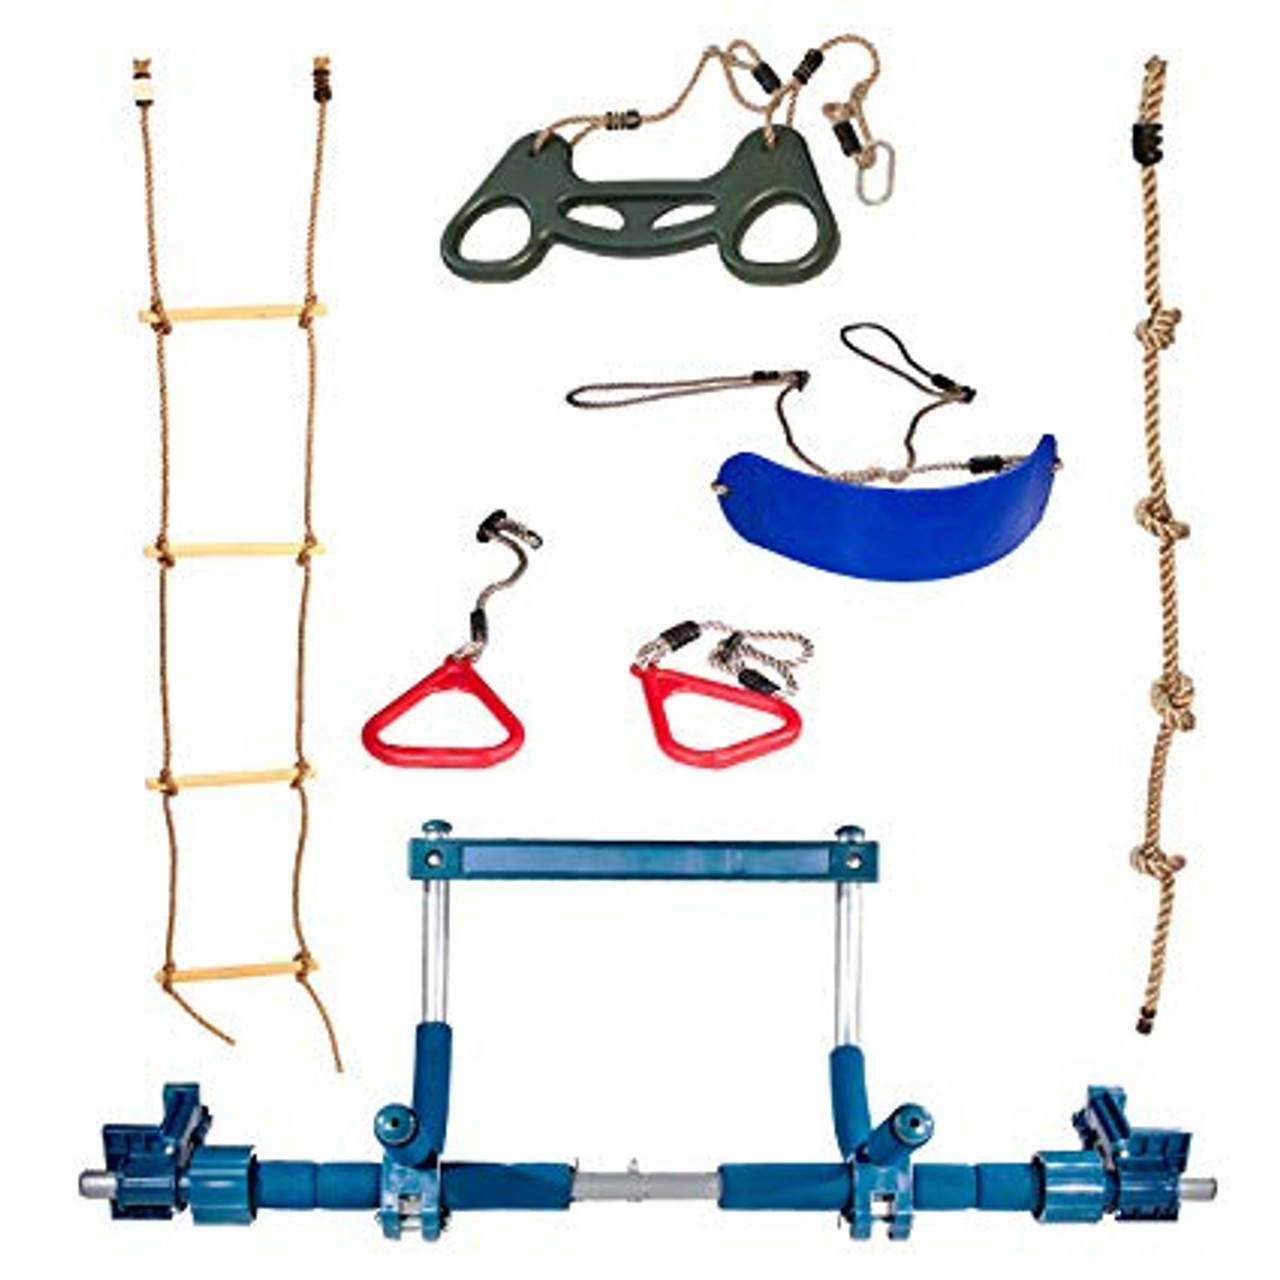 Gorilla Gym Sensory Swing System Indoor Playground Complete Set